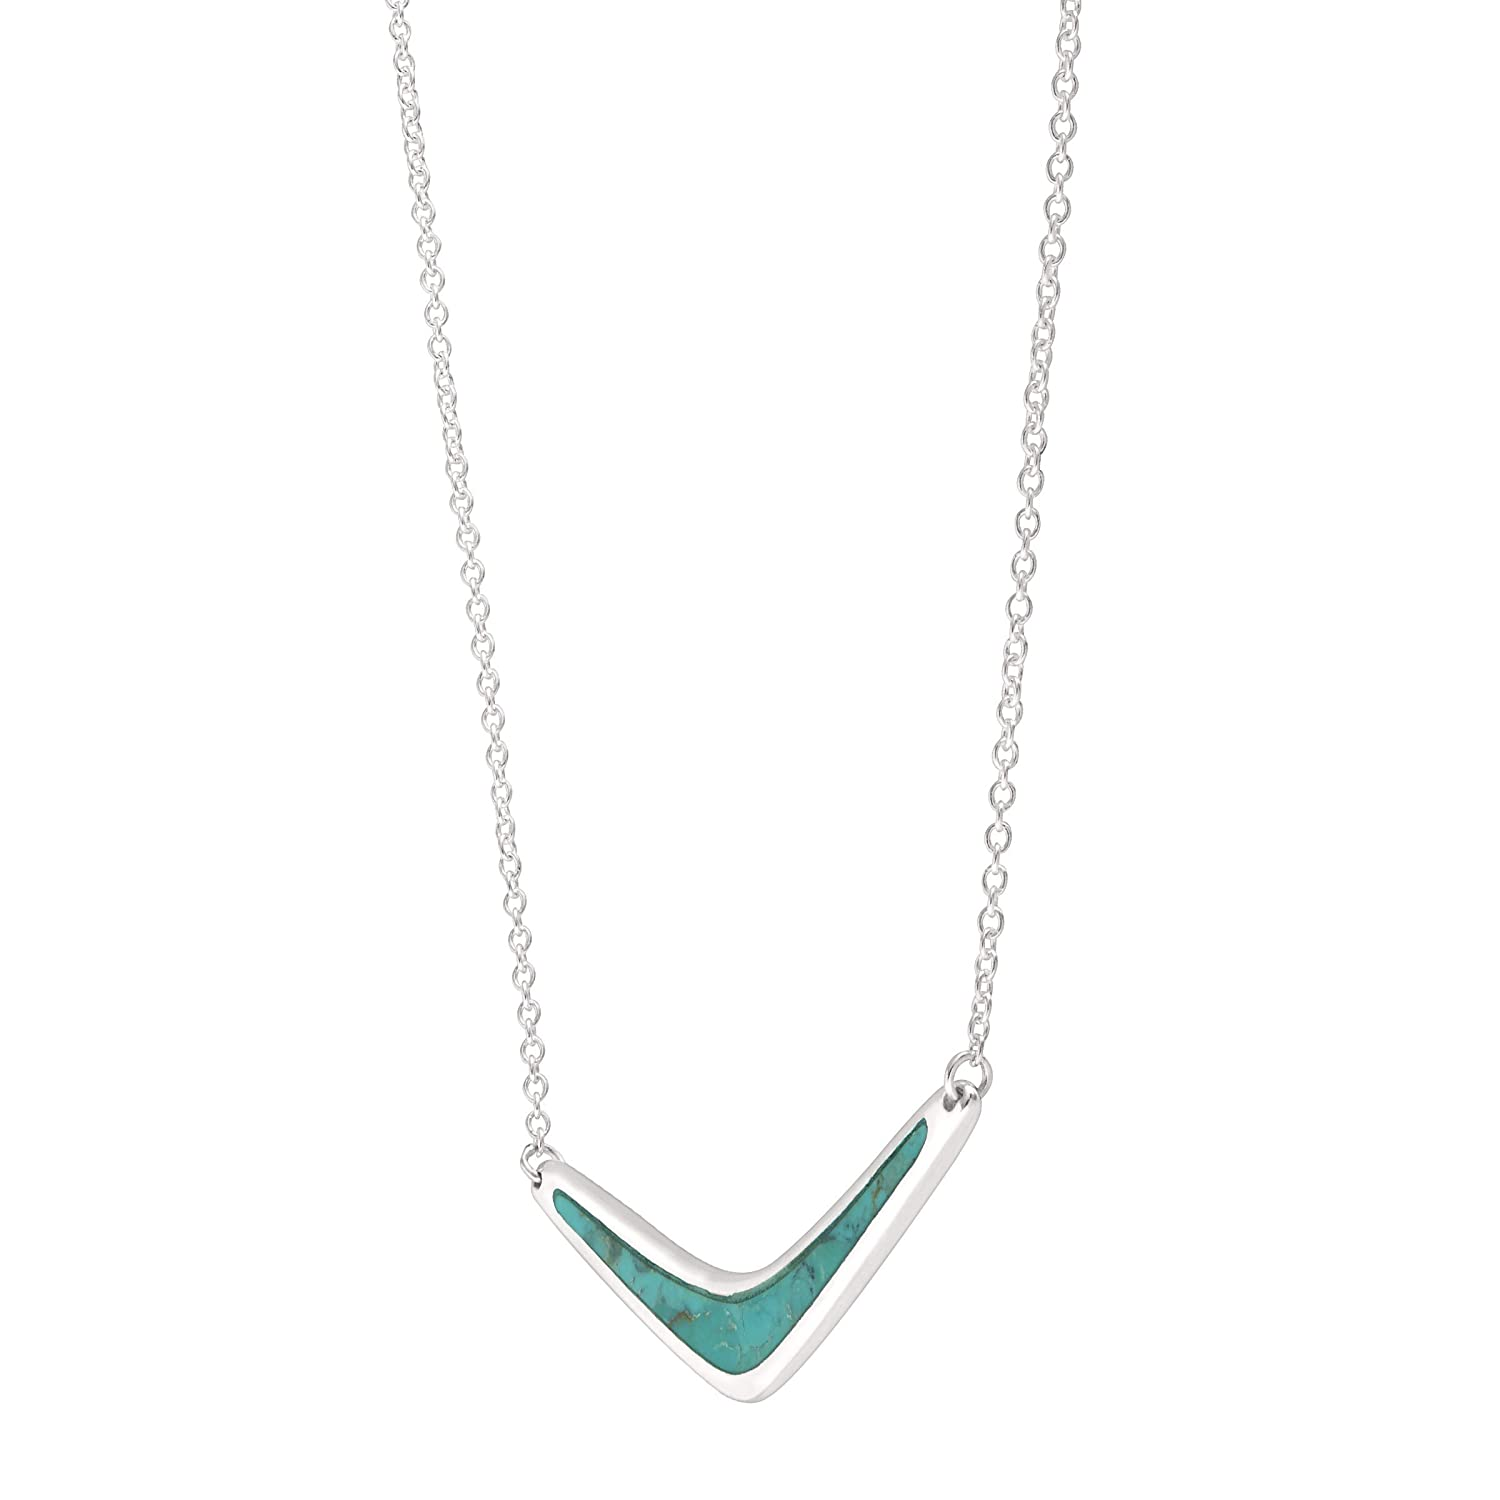 Silpada Reversible Boomerang Compressed Turquoise Necklace in Sterling Silver